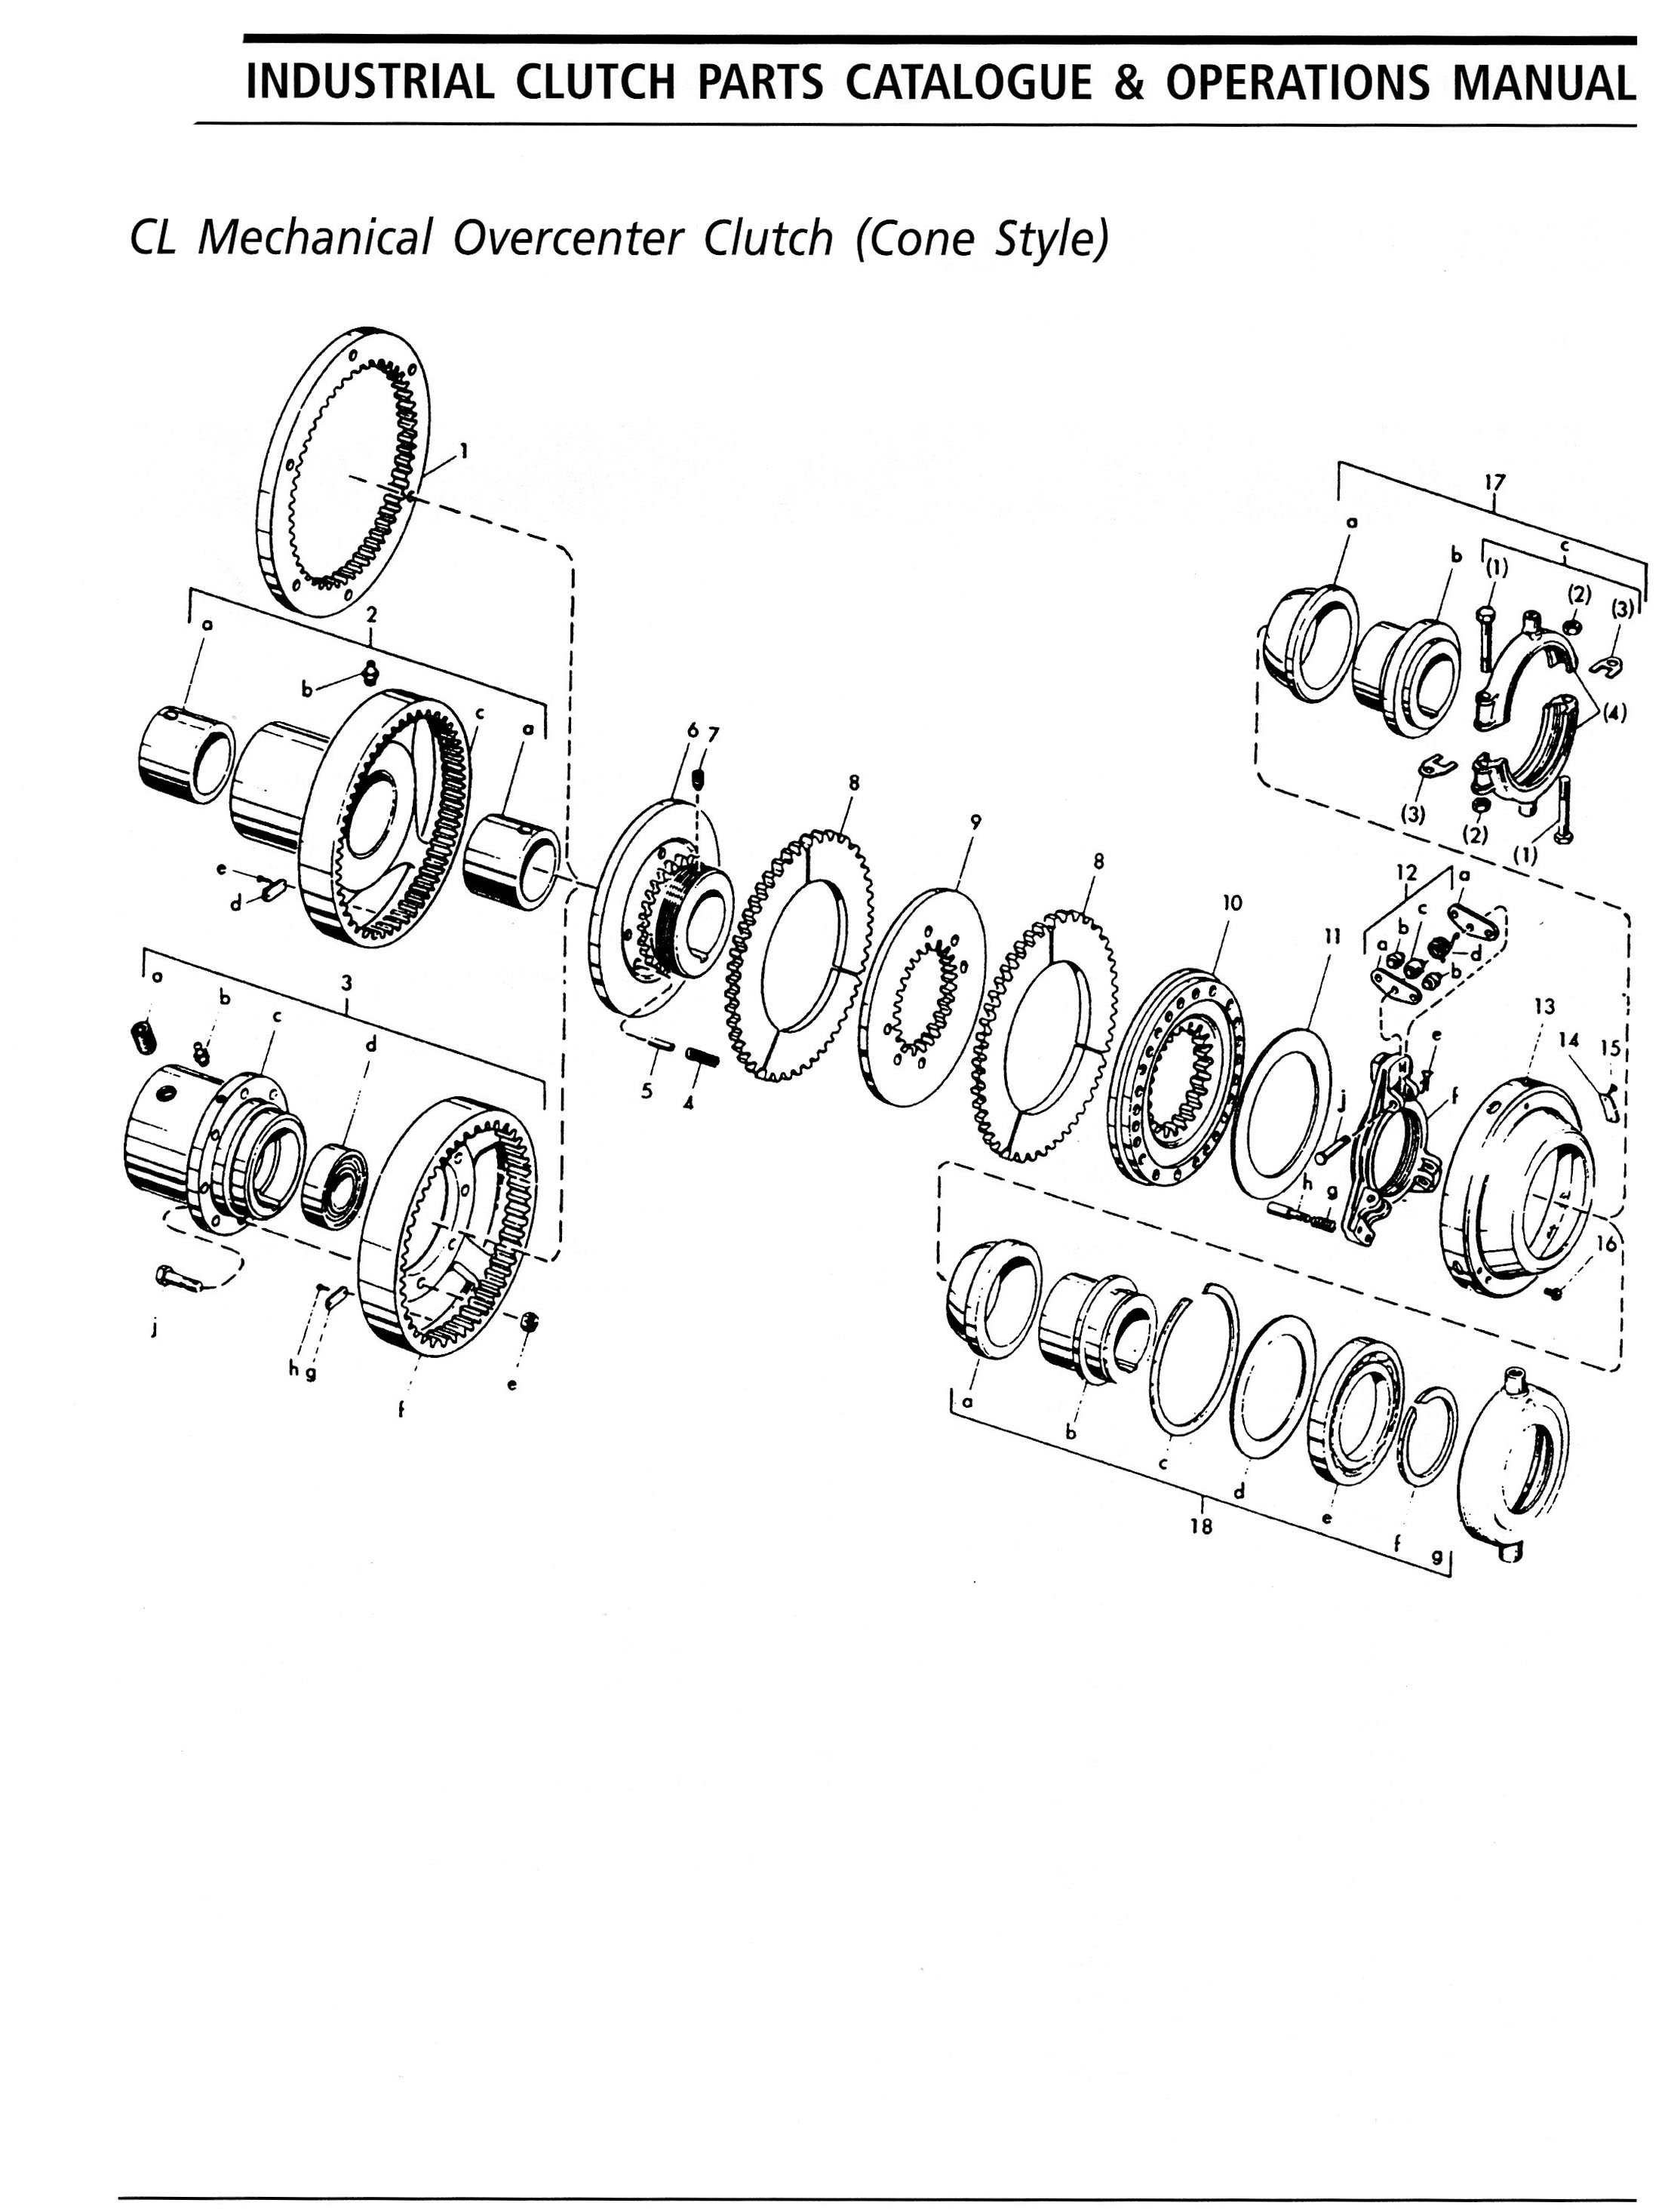 Ottawa Clutch Automotive Industrial Agricultural Clutches Manual Transmission Diagram 1 Exploded View Of The 29 Cl Parts List